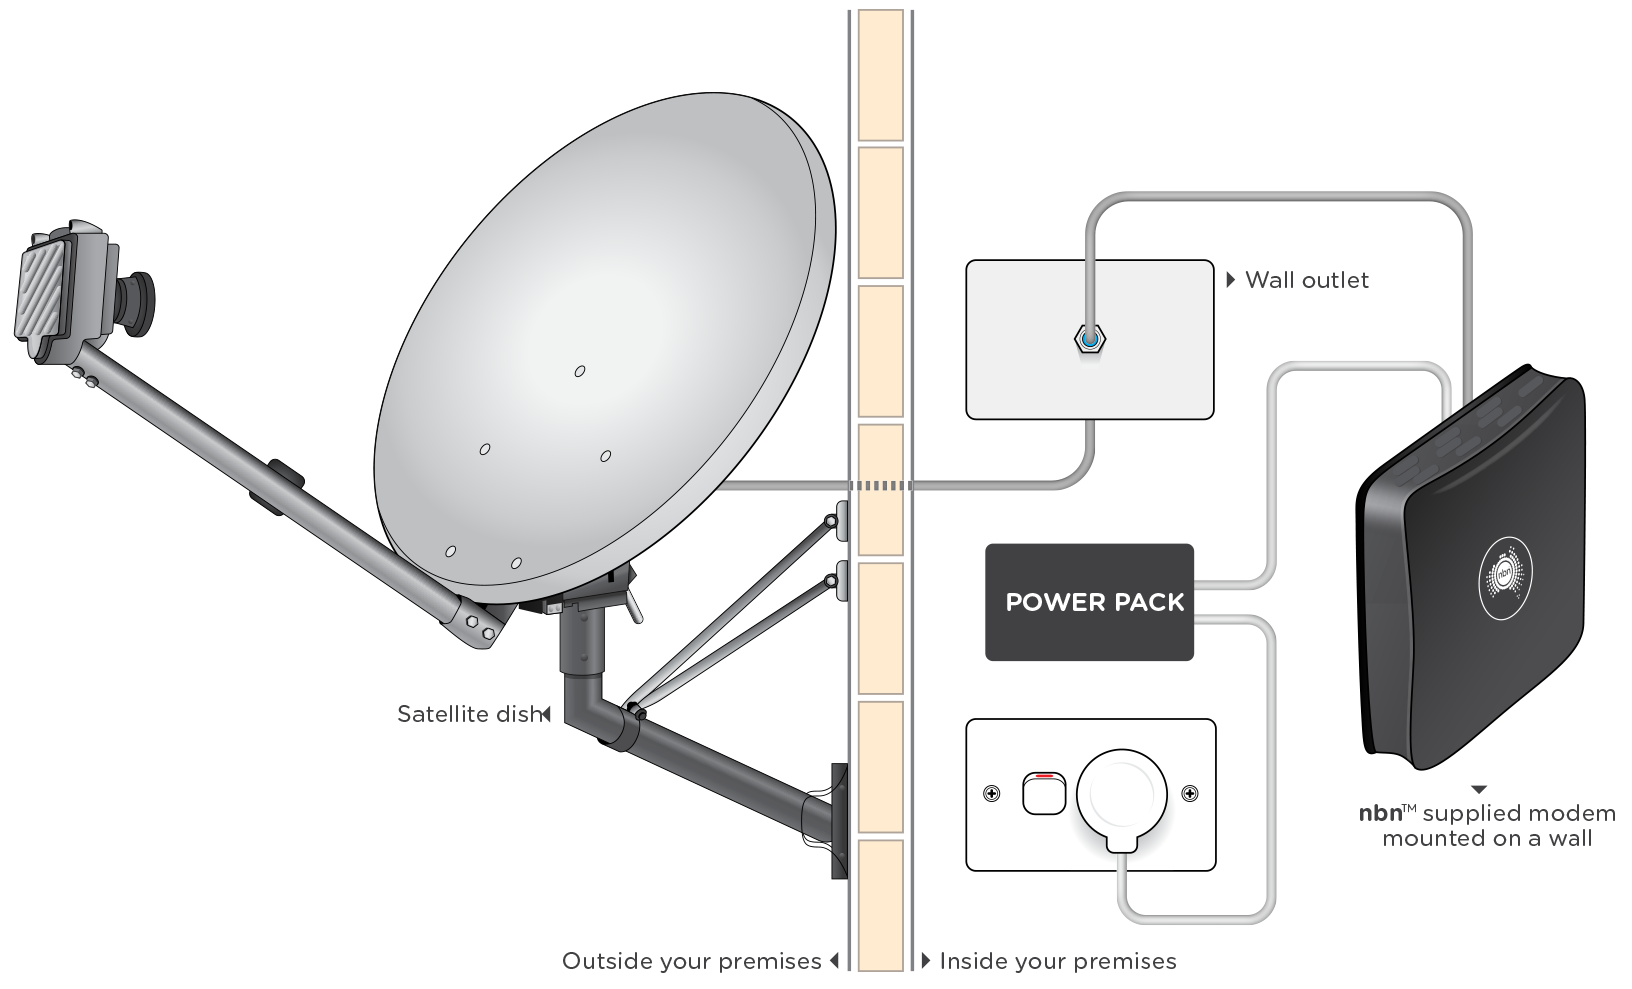 Satellite Dish Connection Diagram Worksheet And Wiring 625 Nbn Sky Muster Service Explained Australia S Rh Nbnco Com Au Hopper